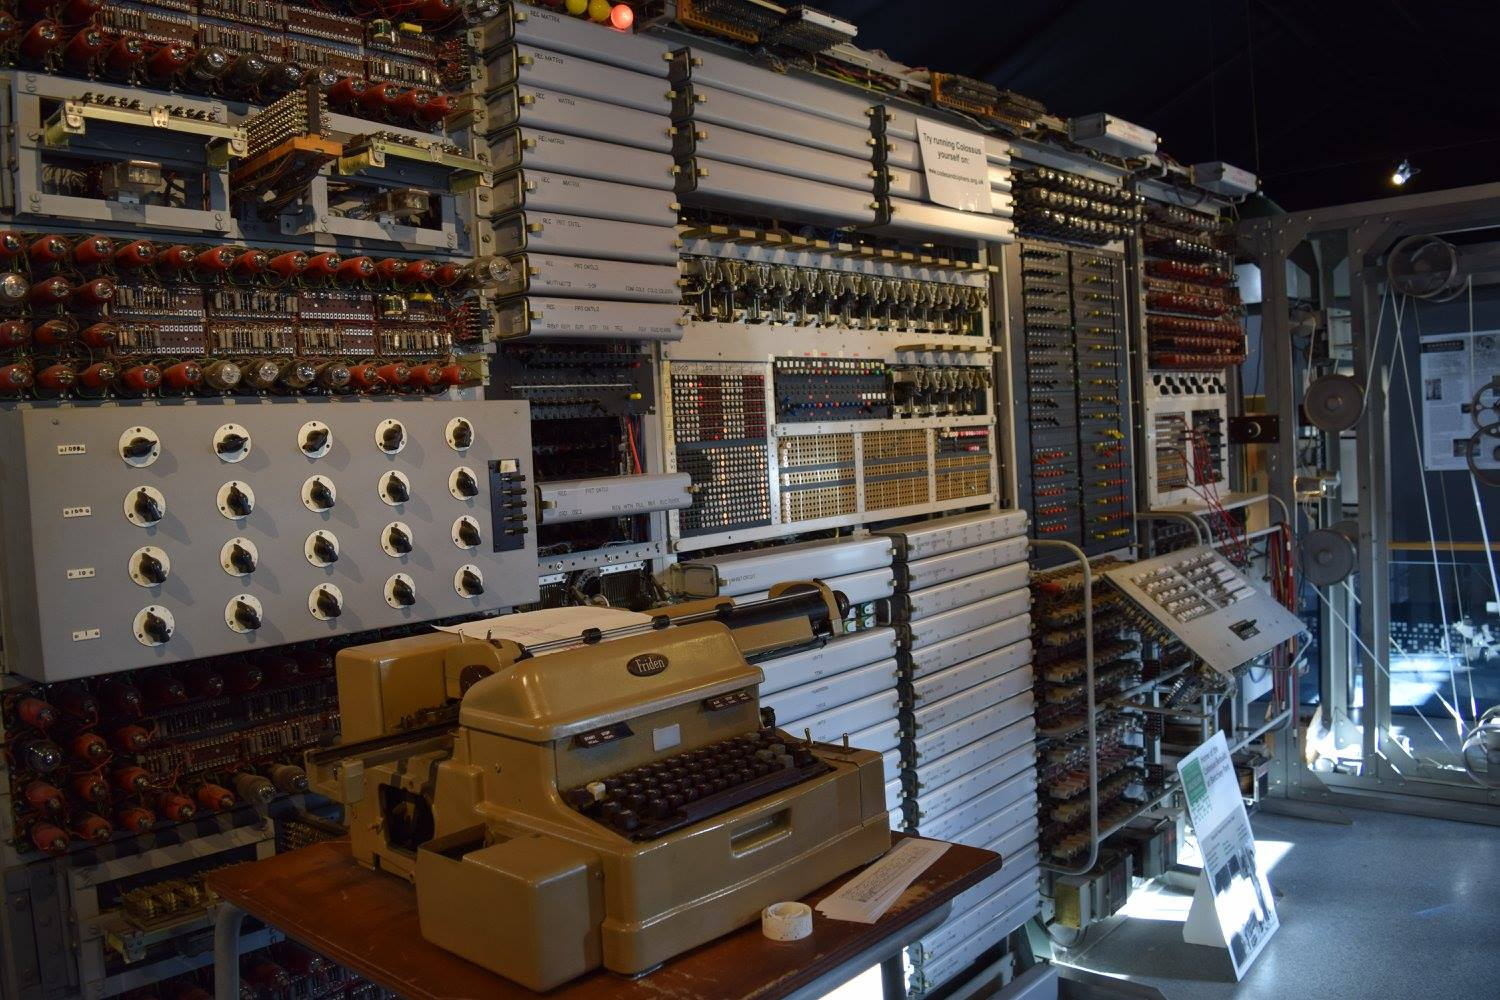 Visit to the National Museum of Computing Feb 2016